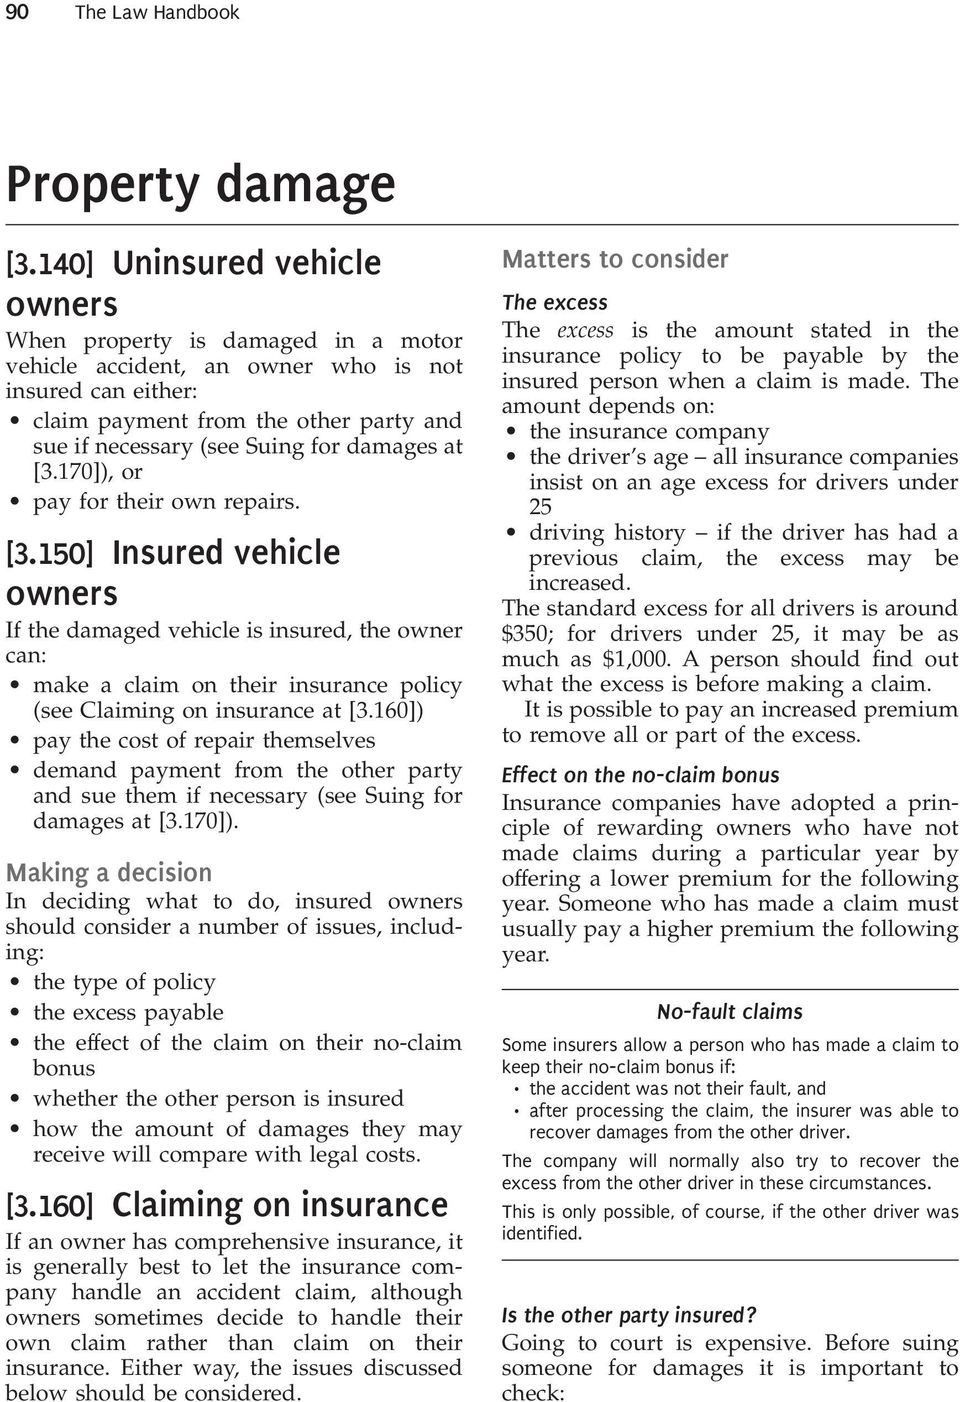 damages at [3.170]), or pay for their own repairs. [3.150] Insured vehicle owners If the damaged vehicle is insured, the owner can: make a claim on their insurance policy (see Claiming on insurance at [3.